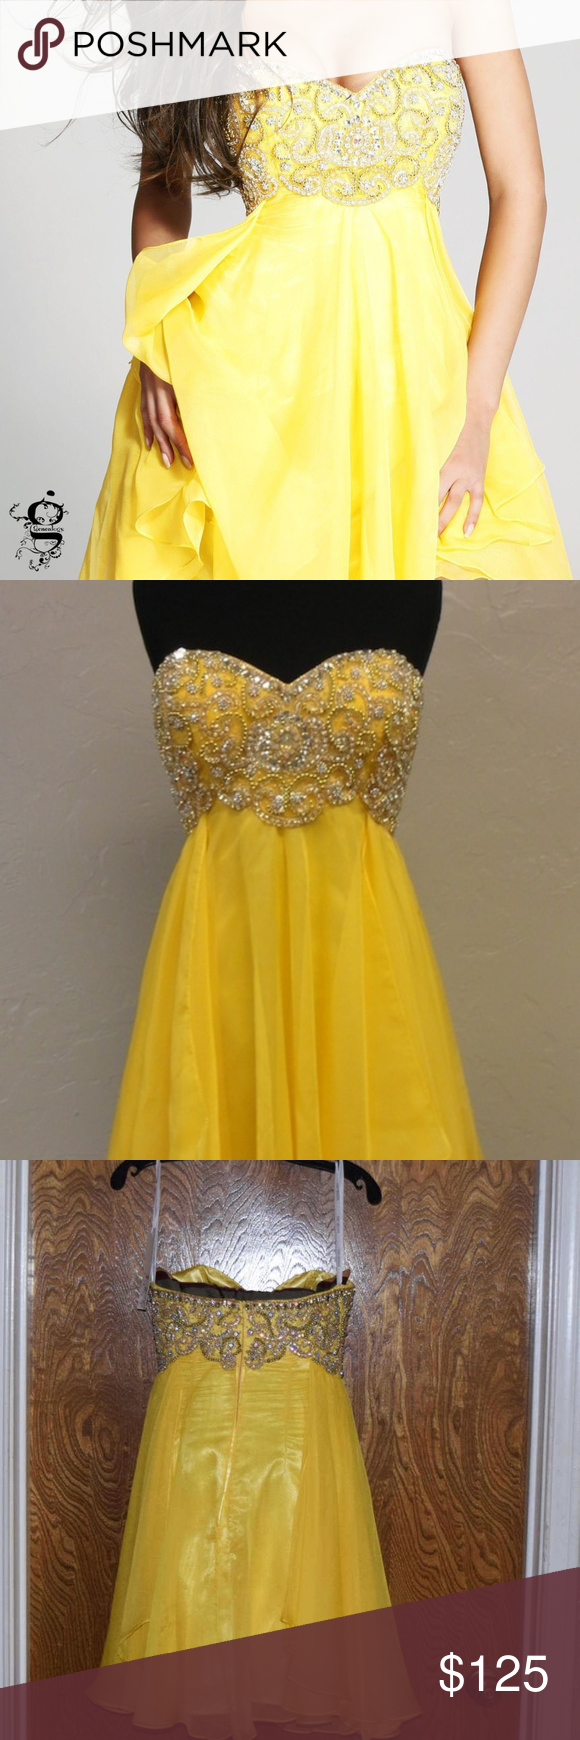 Sherri hill cocktail homecoming prom dress new with tags sherri